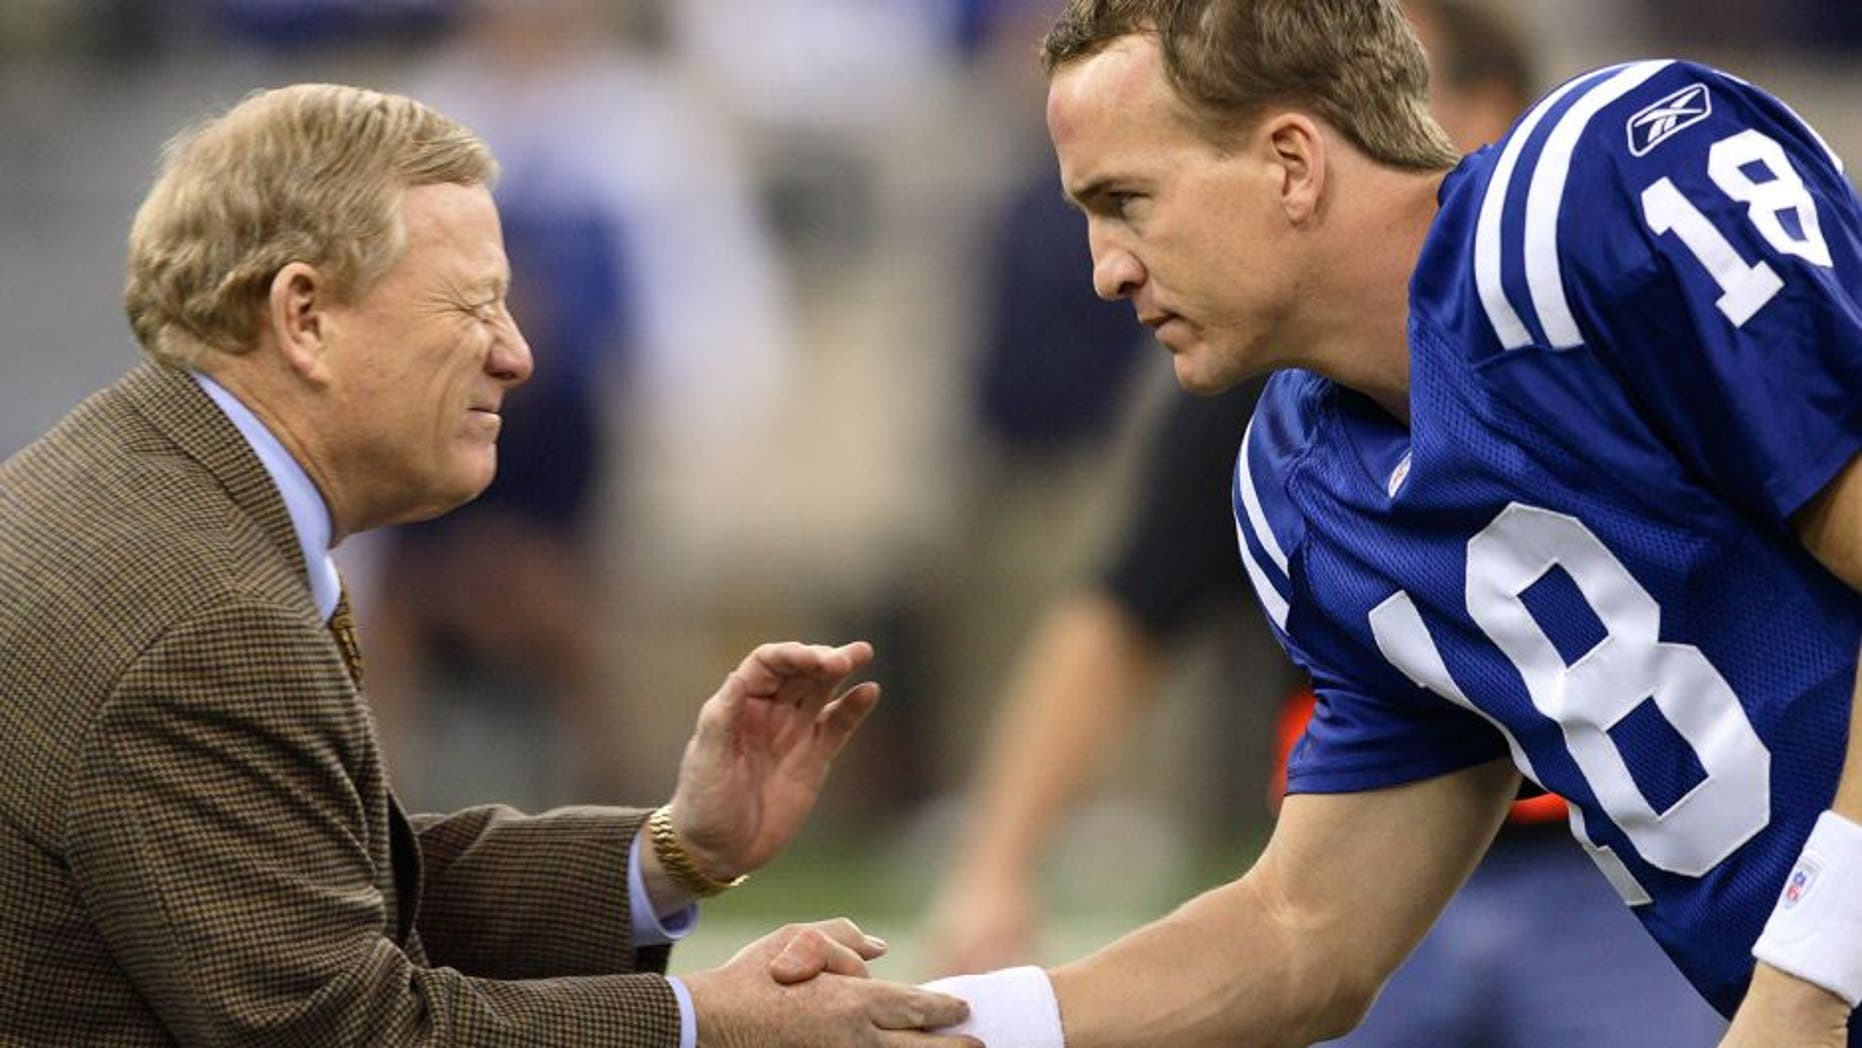 INDIANAPOLIS - JANUARY 21: Peyton Manning #18 of the Indianapolis Colts is greeted by Bill Polian the team's president before the AFC Championship game against the New England Patriots at the RCA Dome on January 21, 2007 in Indianapolis, Indiana. The Colts defeated the Patriots 38-34. (Photo by Joe Robbins/Getty Images)